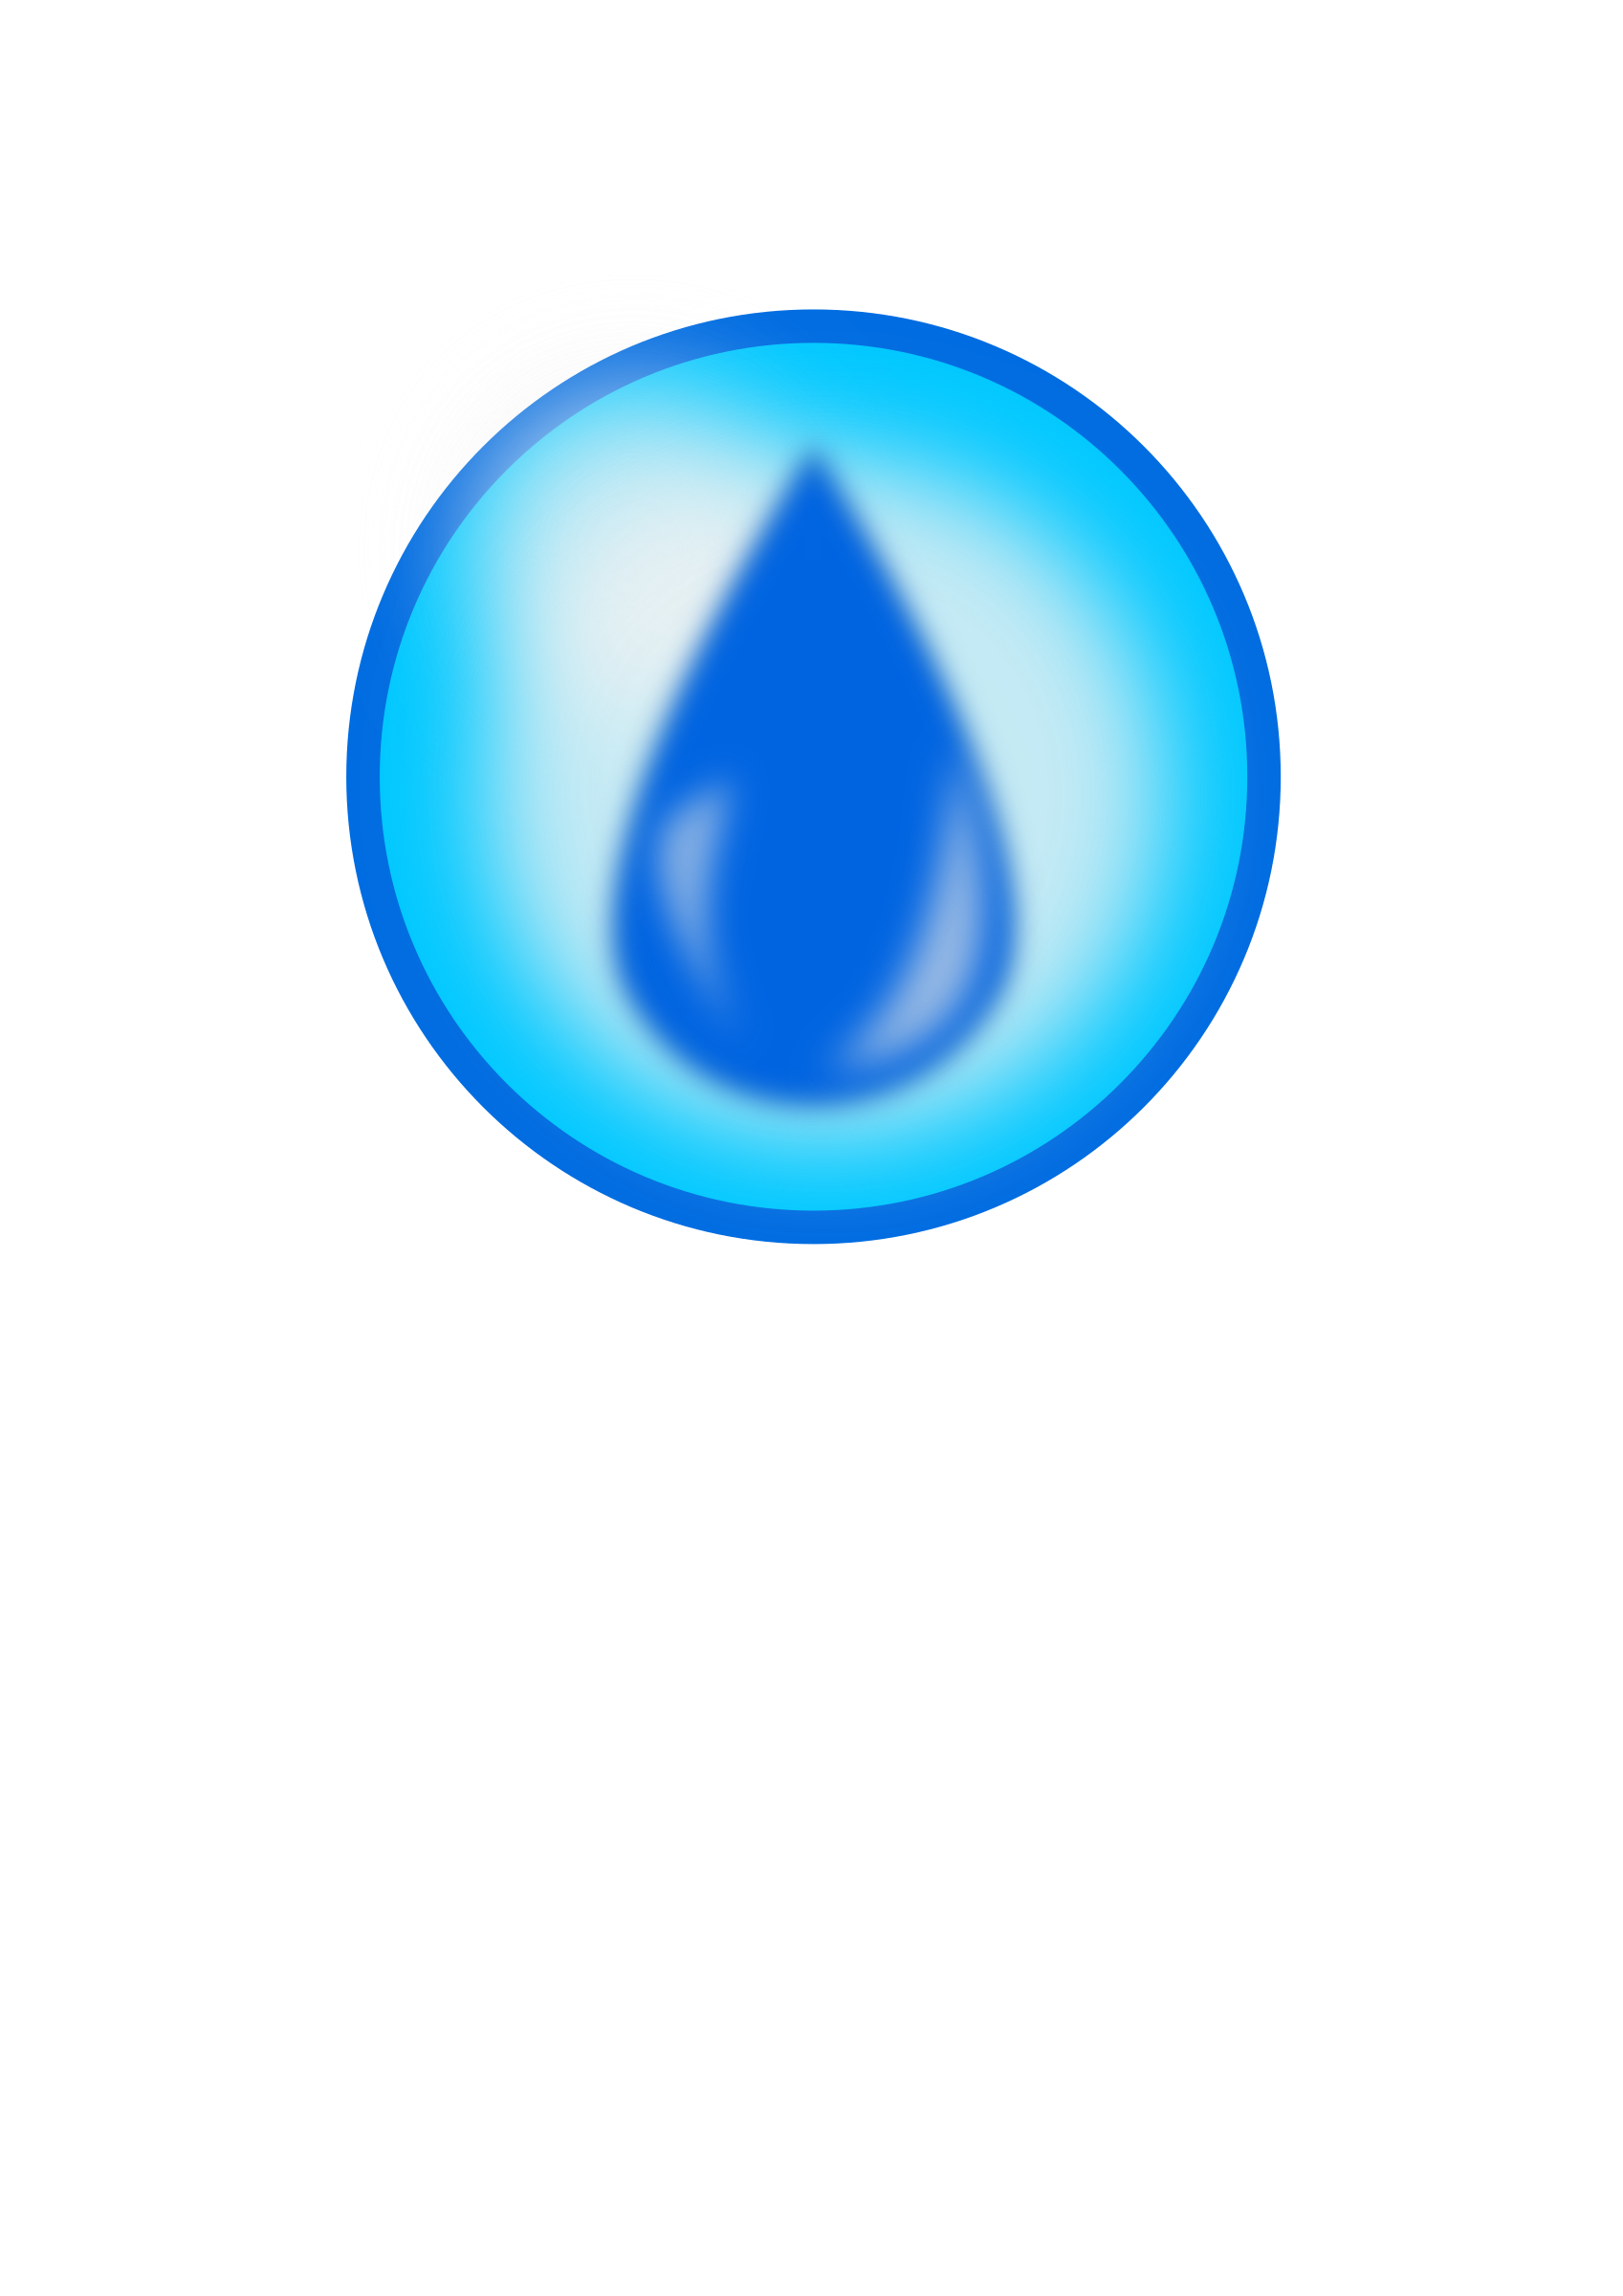 Water icon by ArkyanSoul